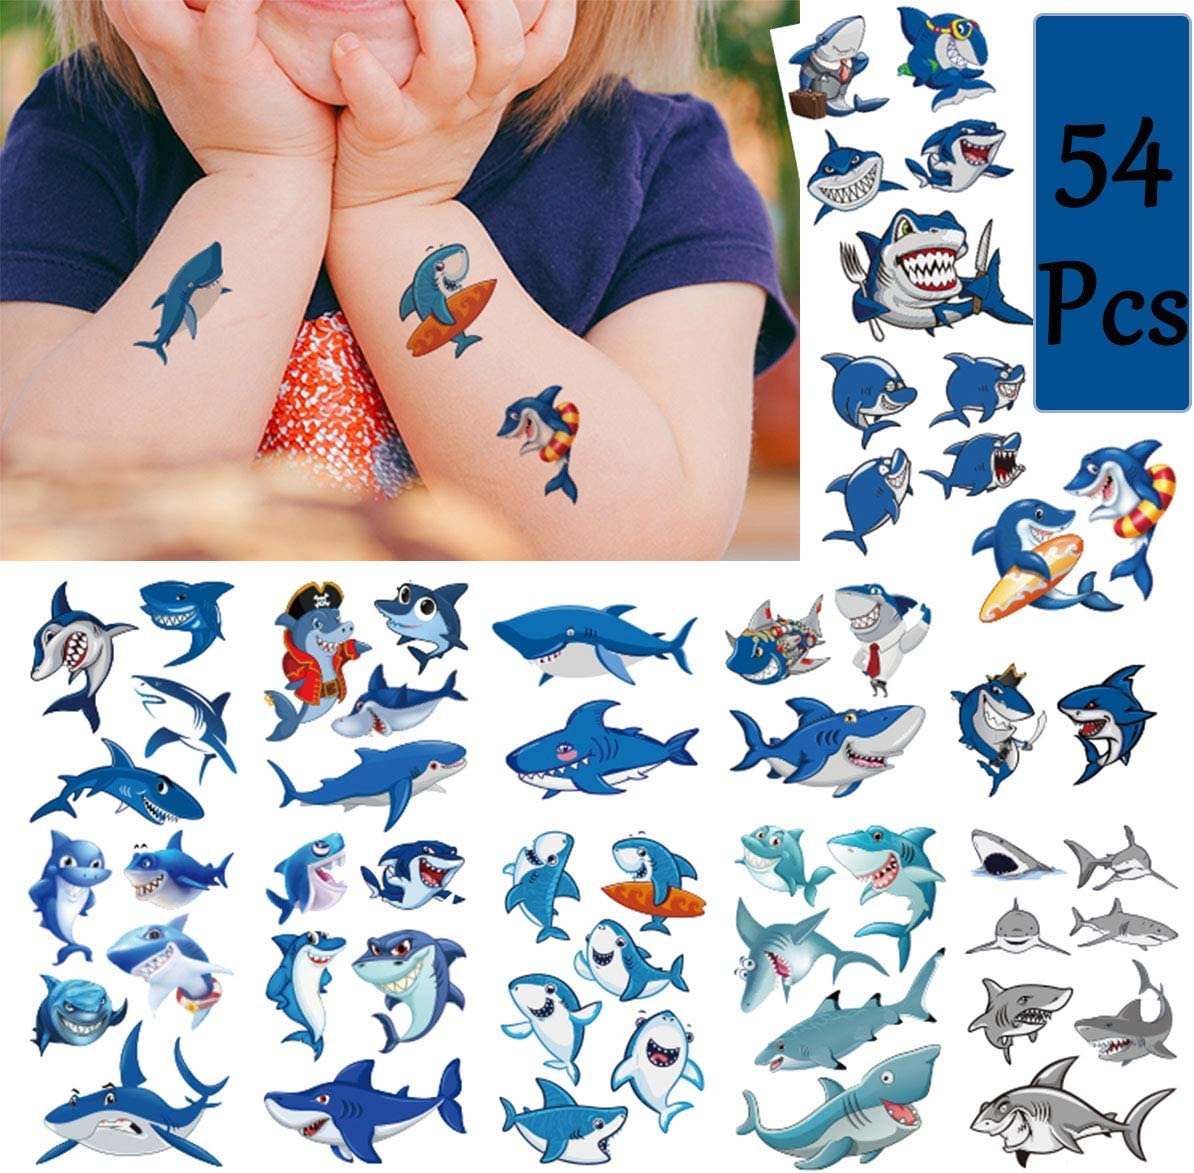 Shark Temporary Tattoos(54Pcs in Large Size) Summer Waterproof Shark Stickers for Boys, Ocean Adventure Party Supplies, Birthday Baby Shower Summer Pool Party Decoration Supplies for Kids and Adults